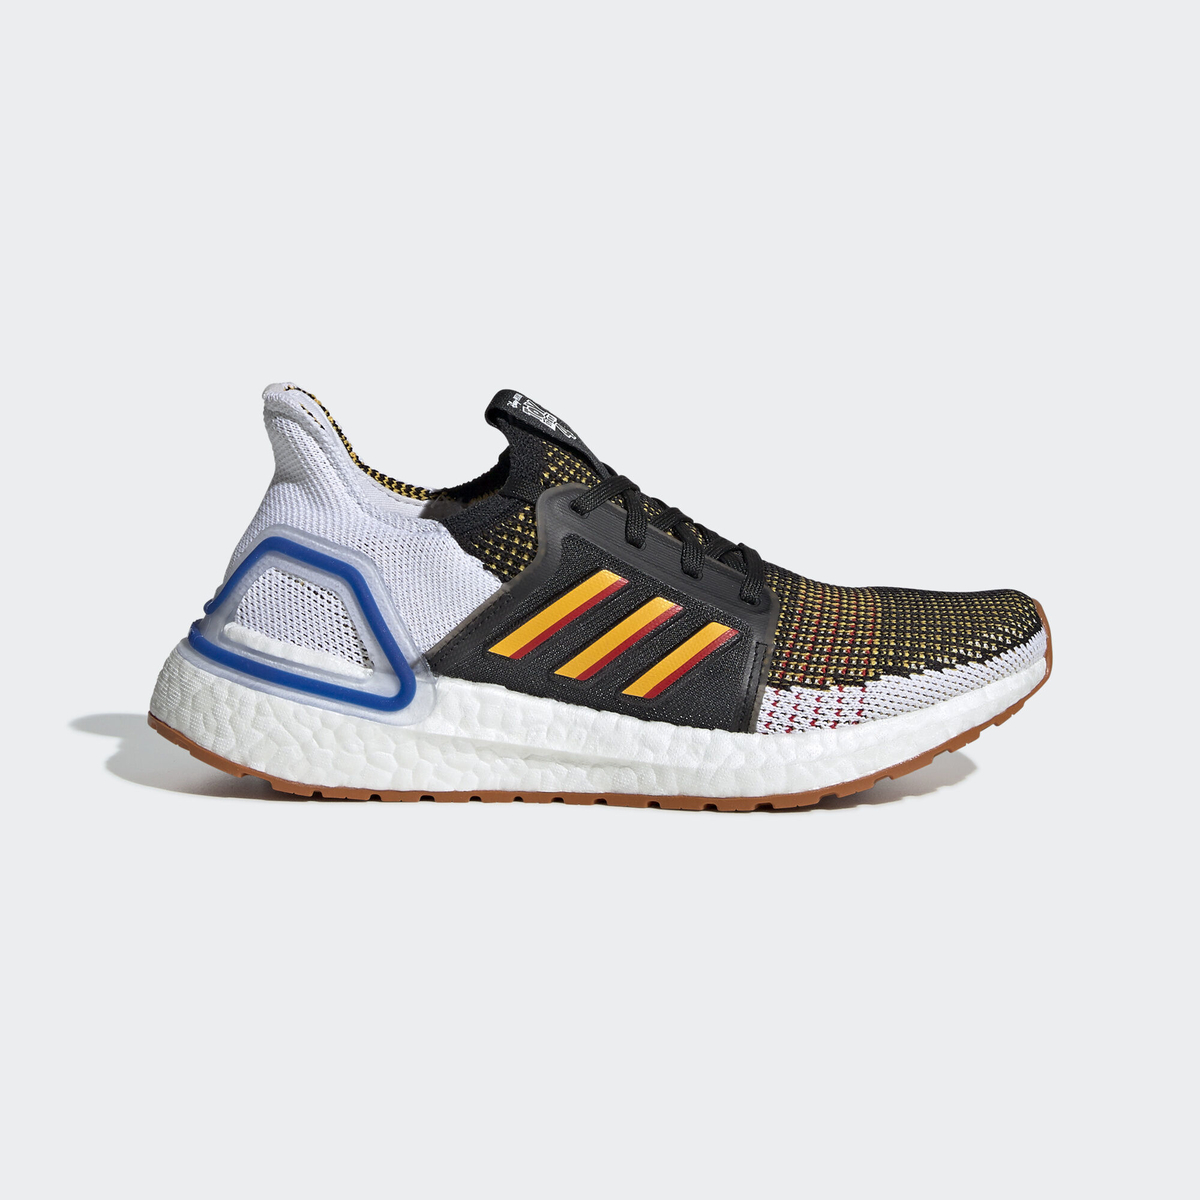 ADIDAS ULTRA BOOST 19 KIDS TOY STORY 4 CORE BLACK : ACTIVE GOLD : SCARLET 3